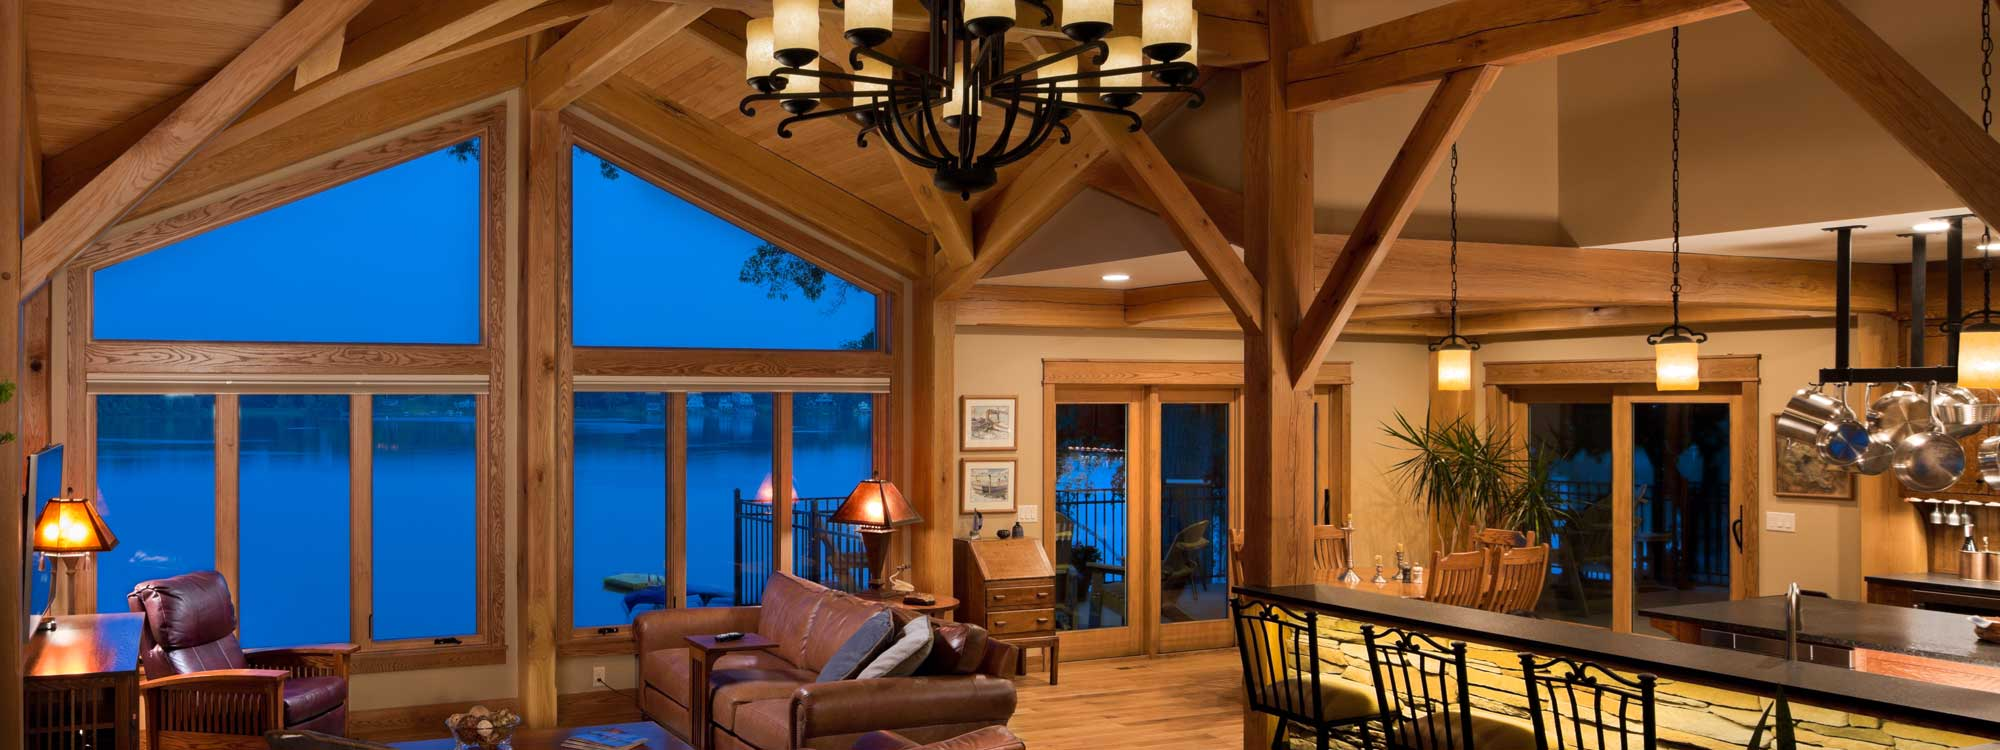 Home - kalamazoo timber frame home interior